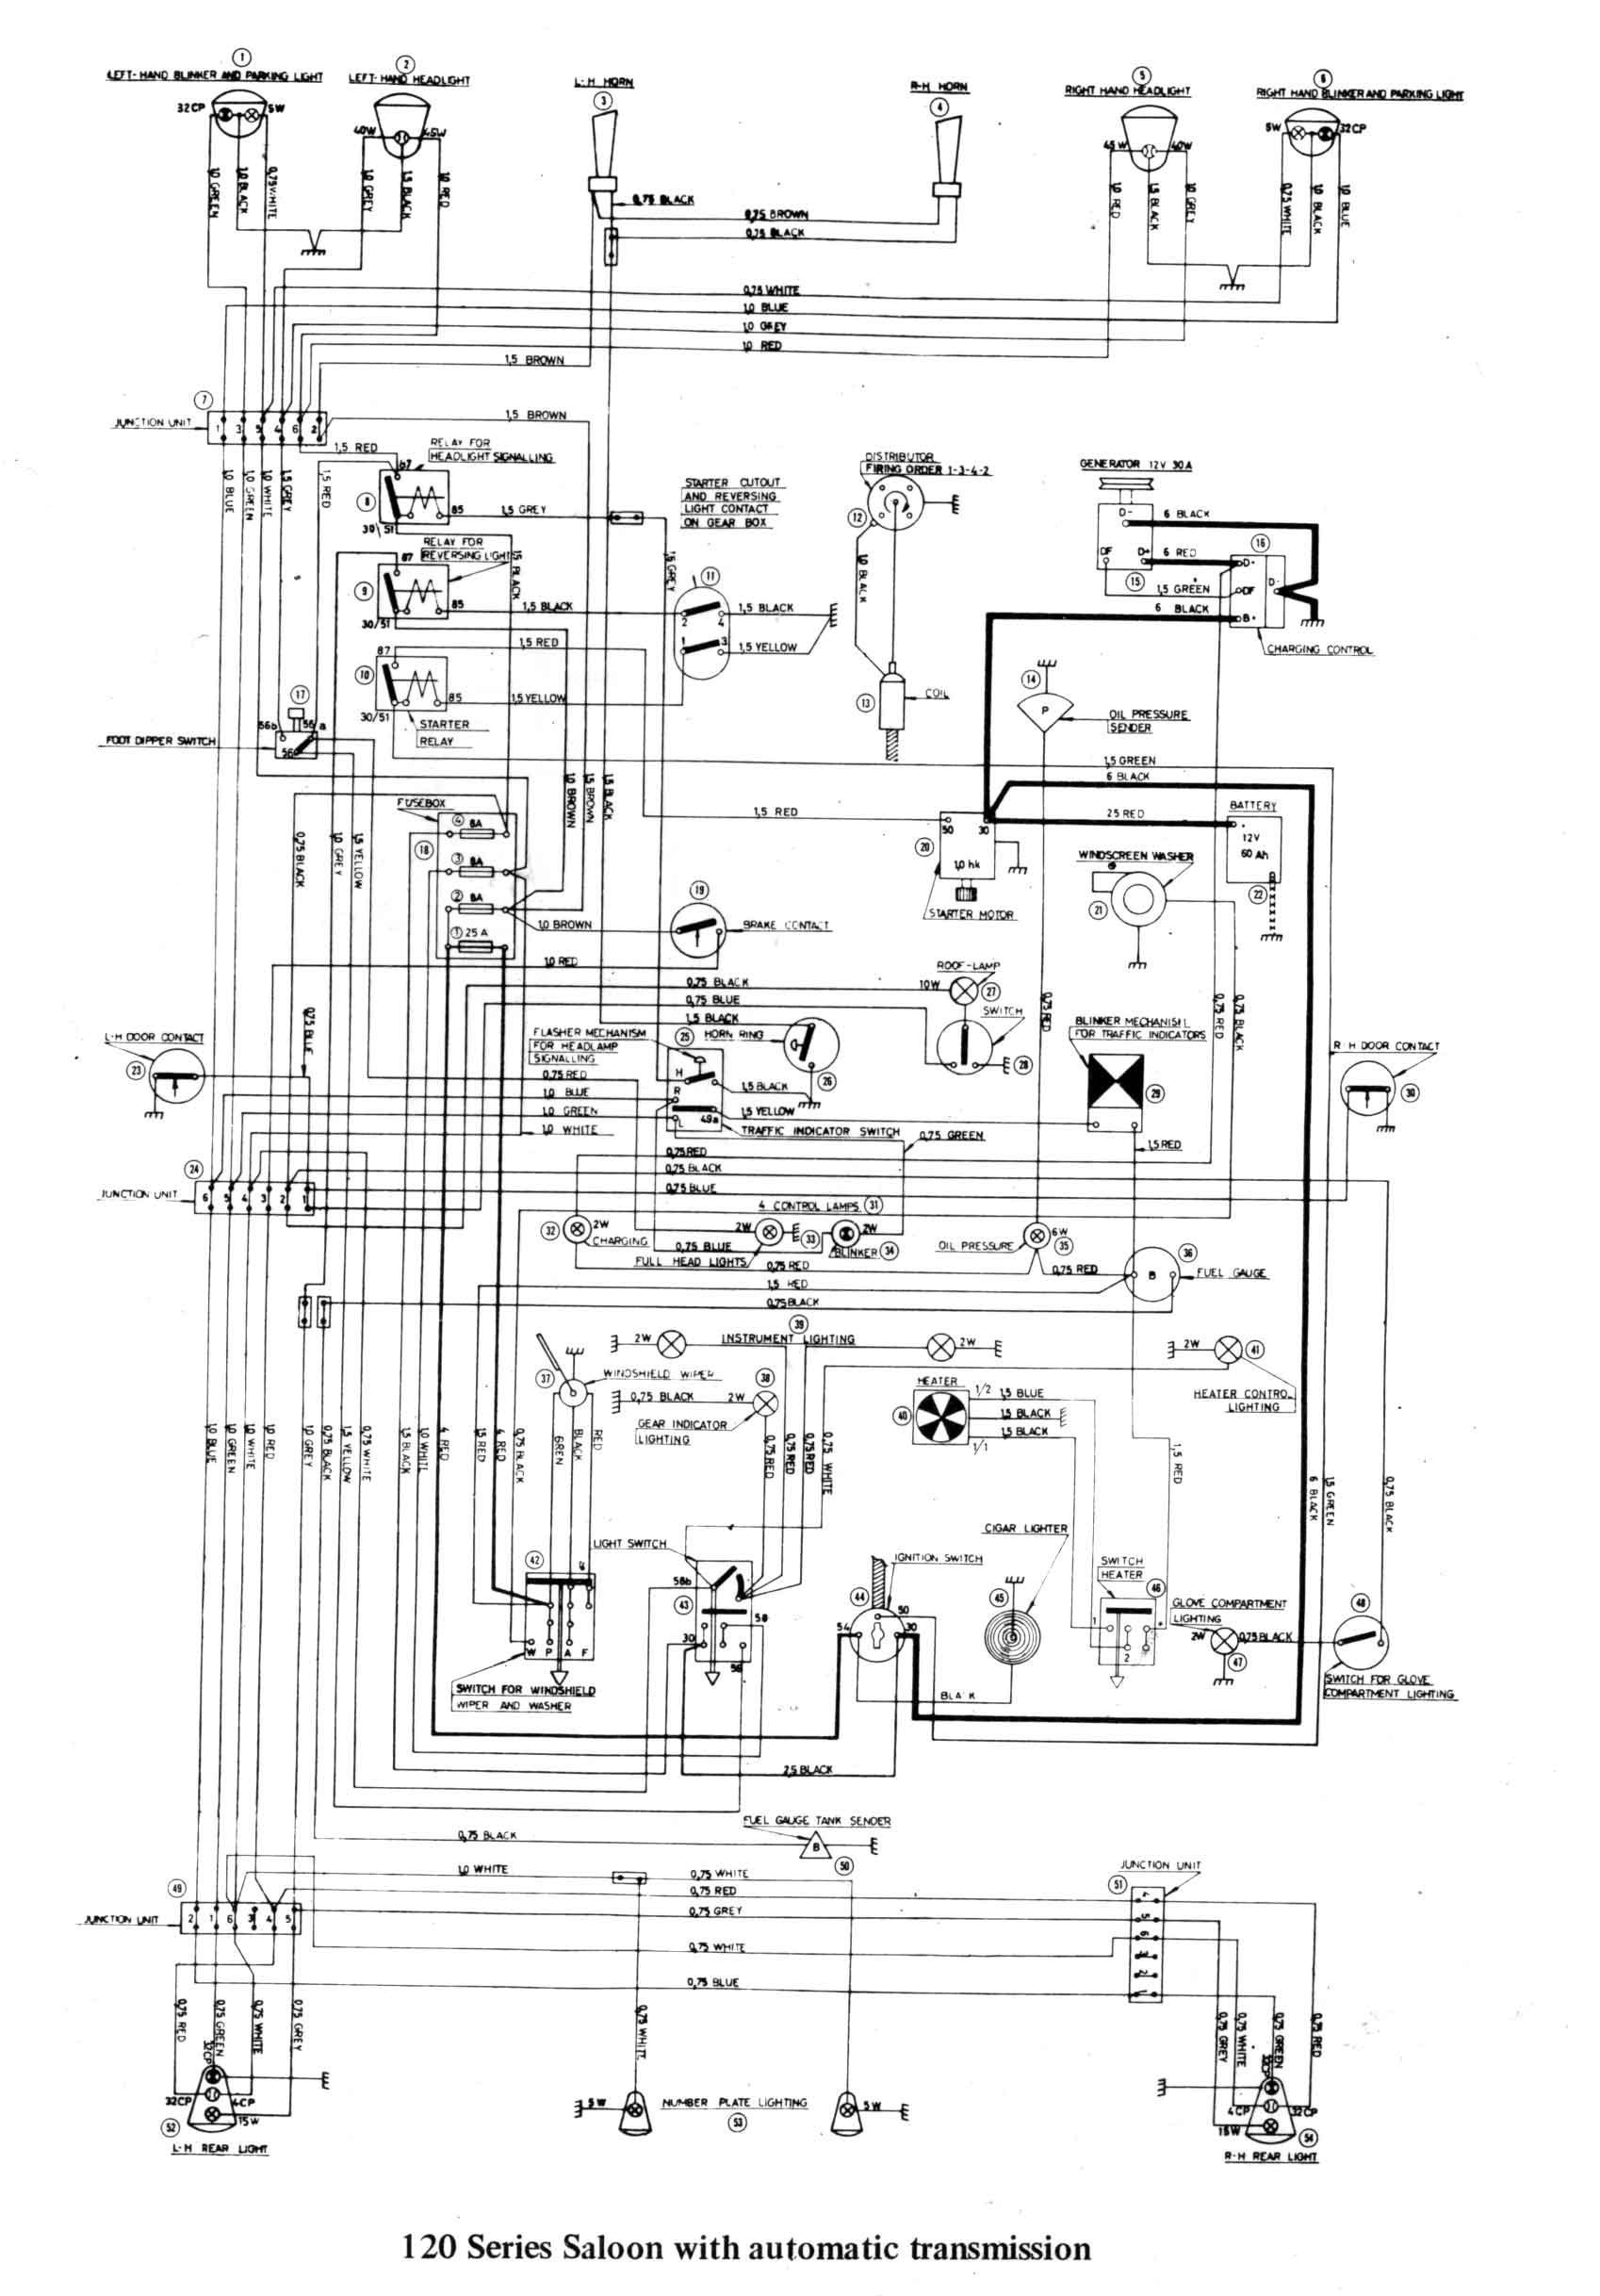 1 Wire Gm Alternator Wiring Diagram from mainetreasurechest.com